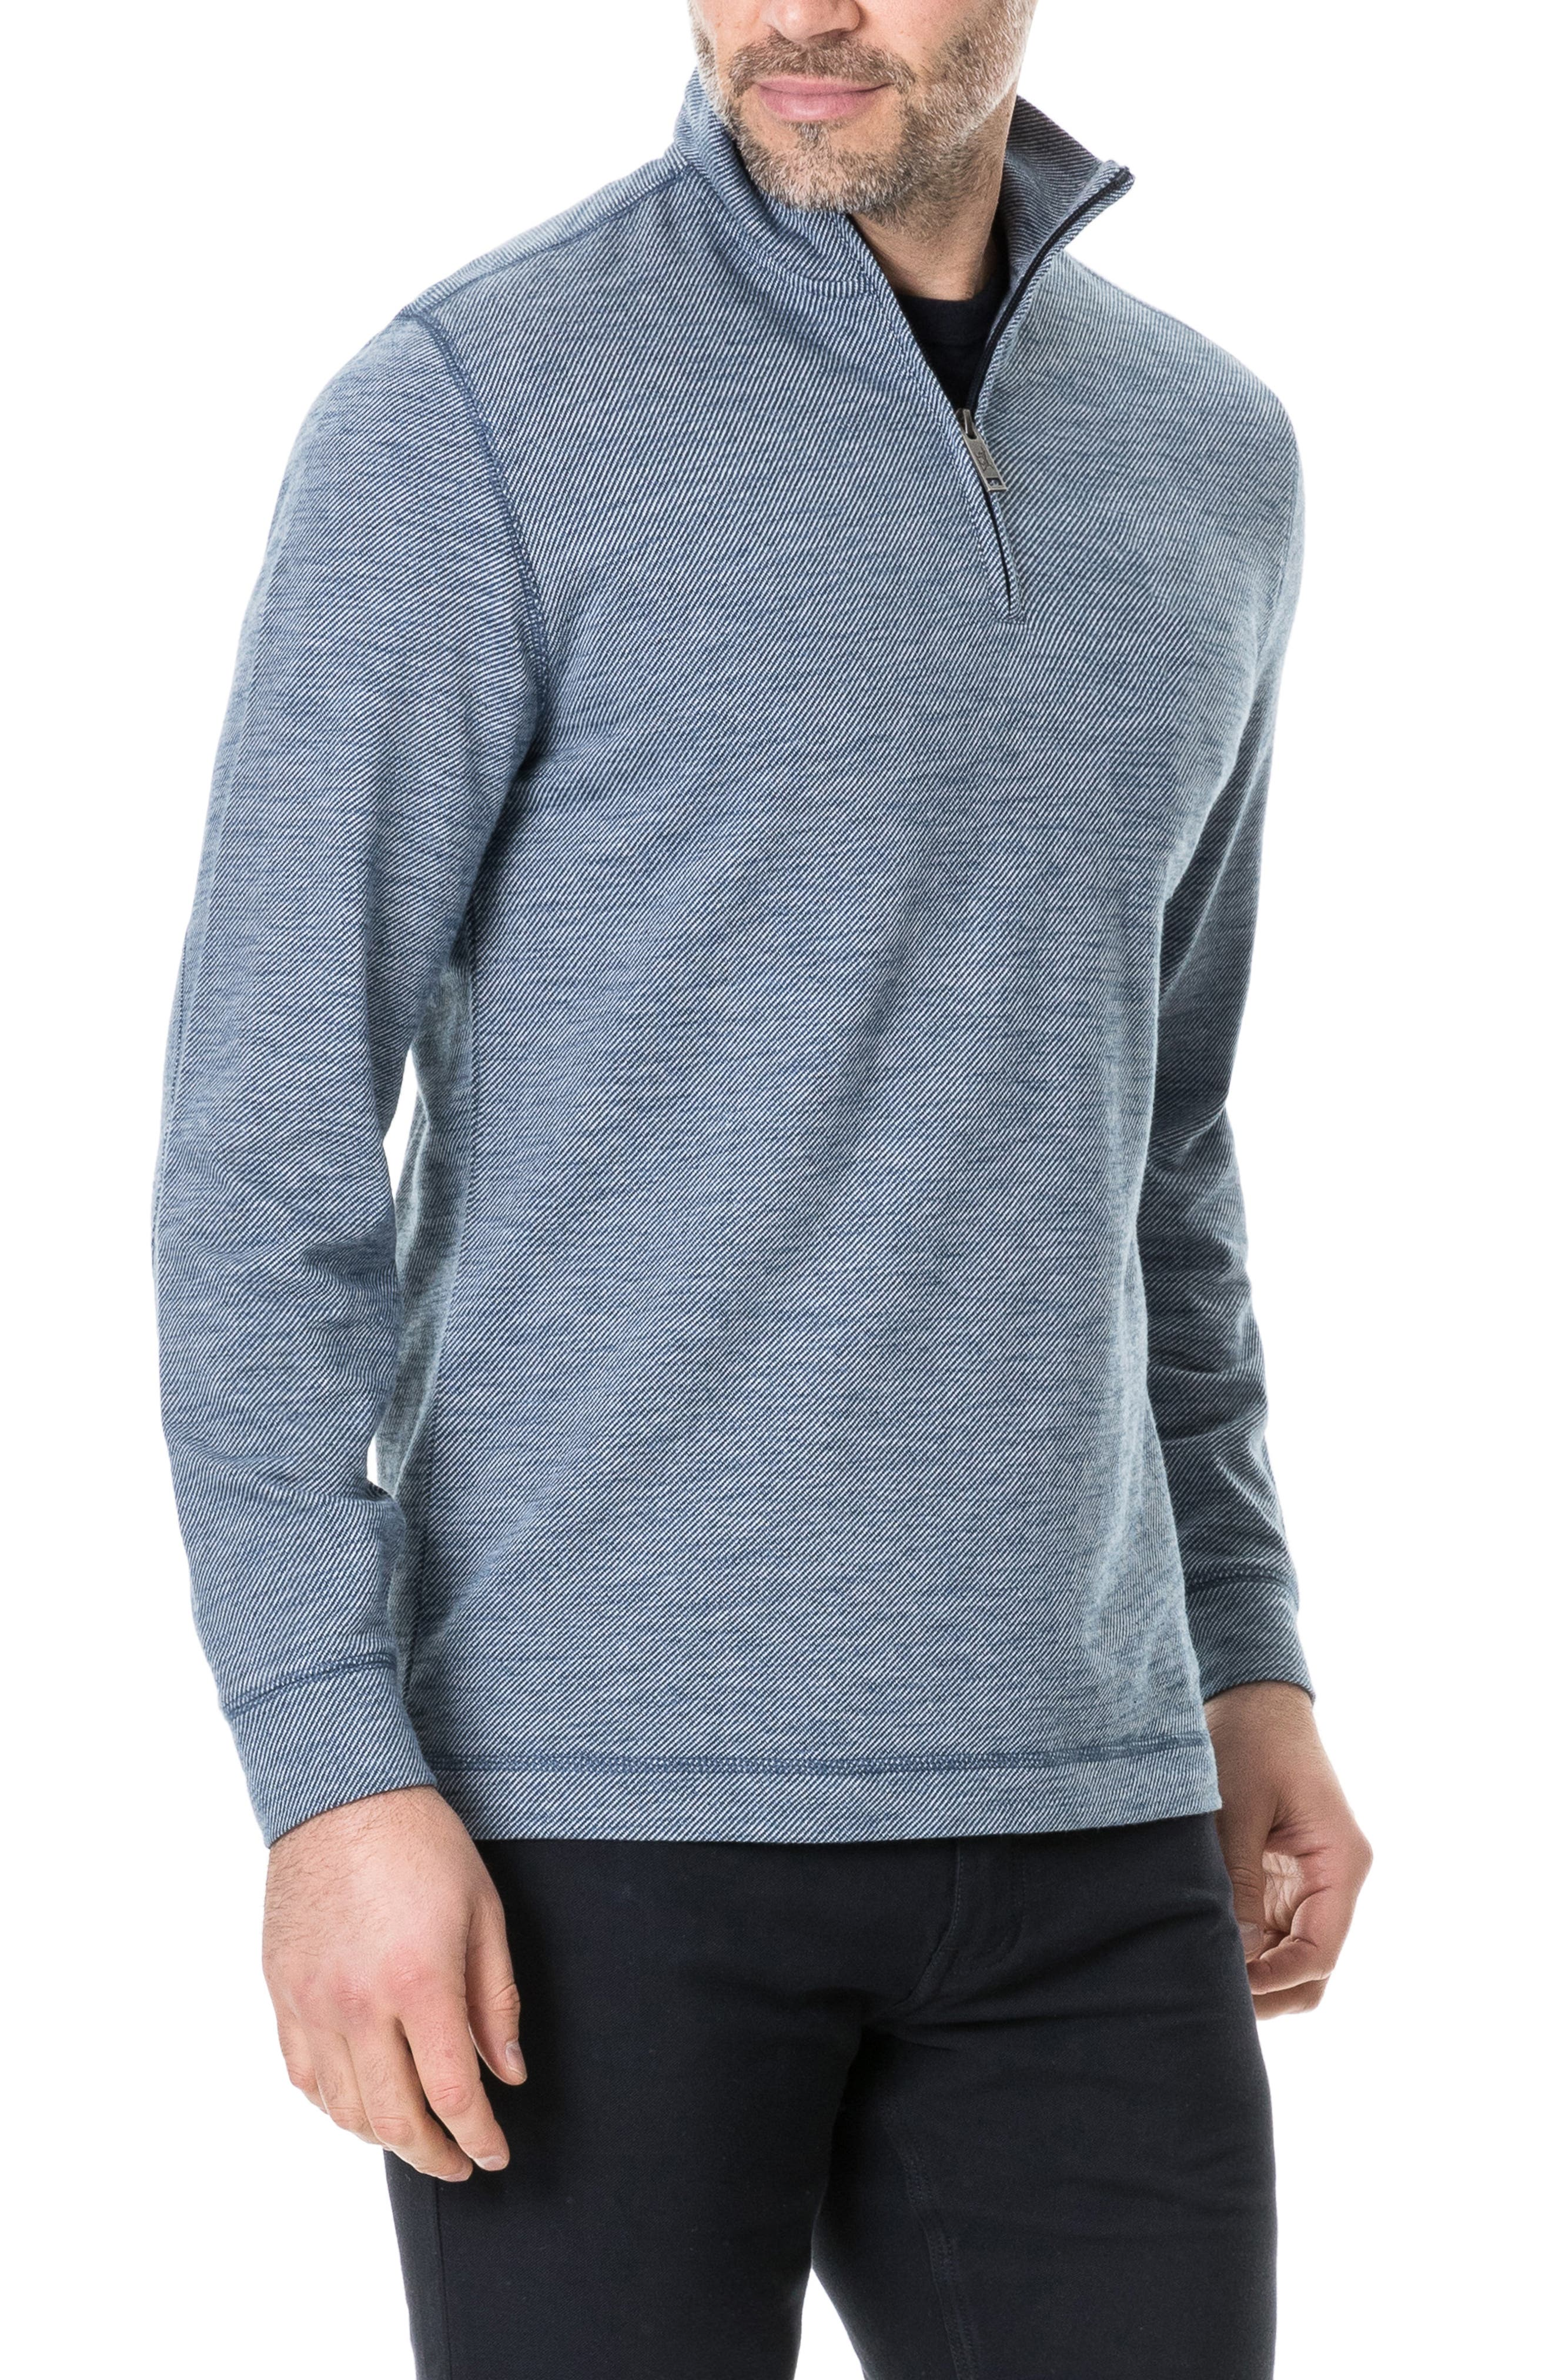 RODD & GUNN, Anvil Island Regular Fit Pullover, Alternate thumbnail 3, color, DENIM BLUE